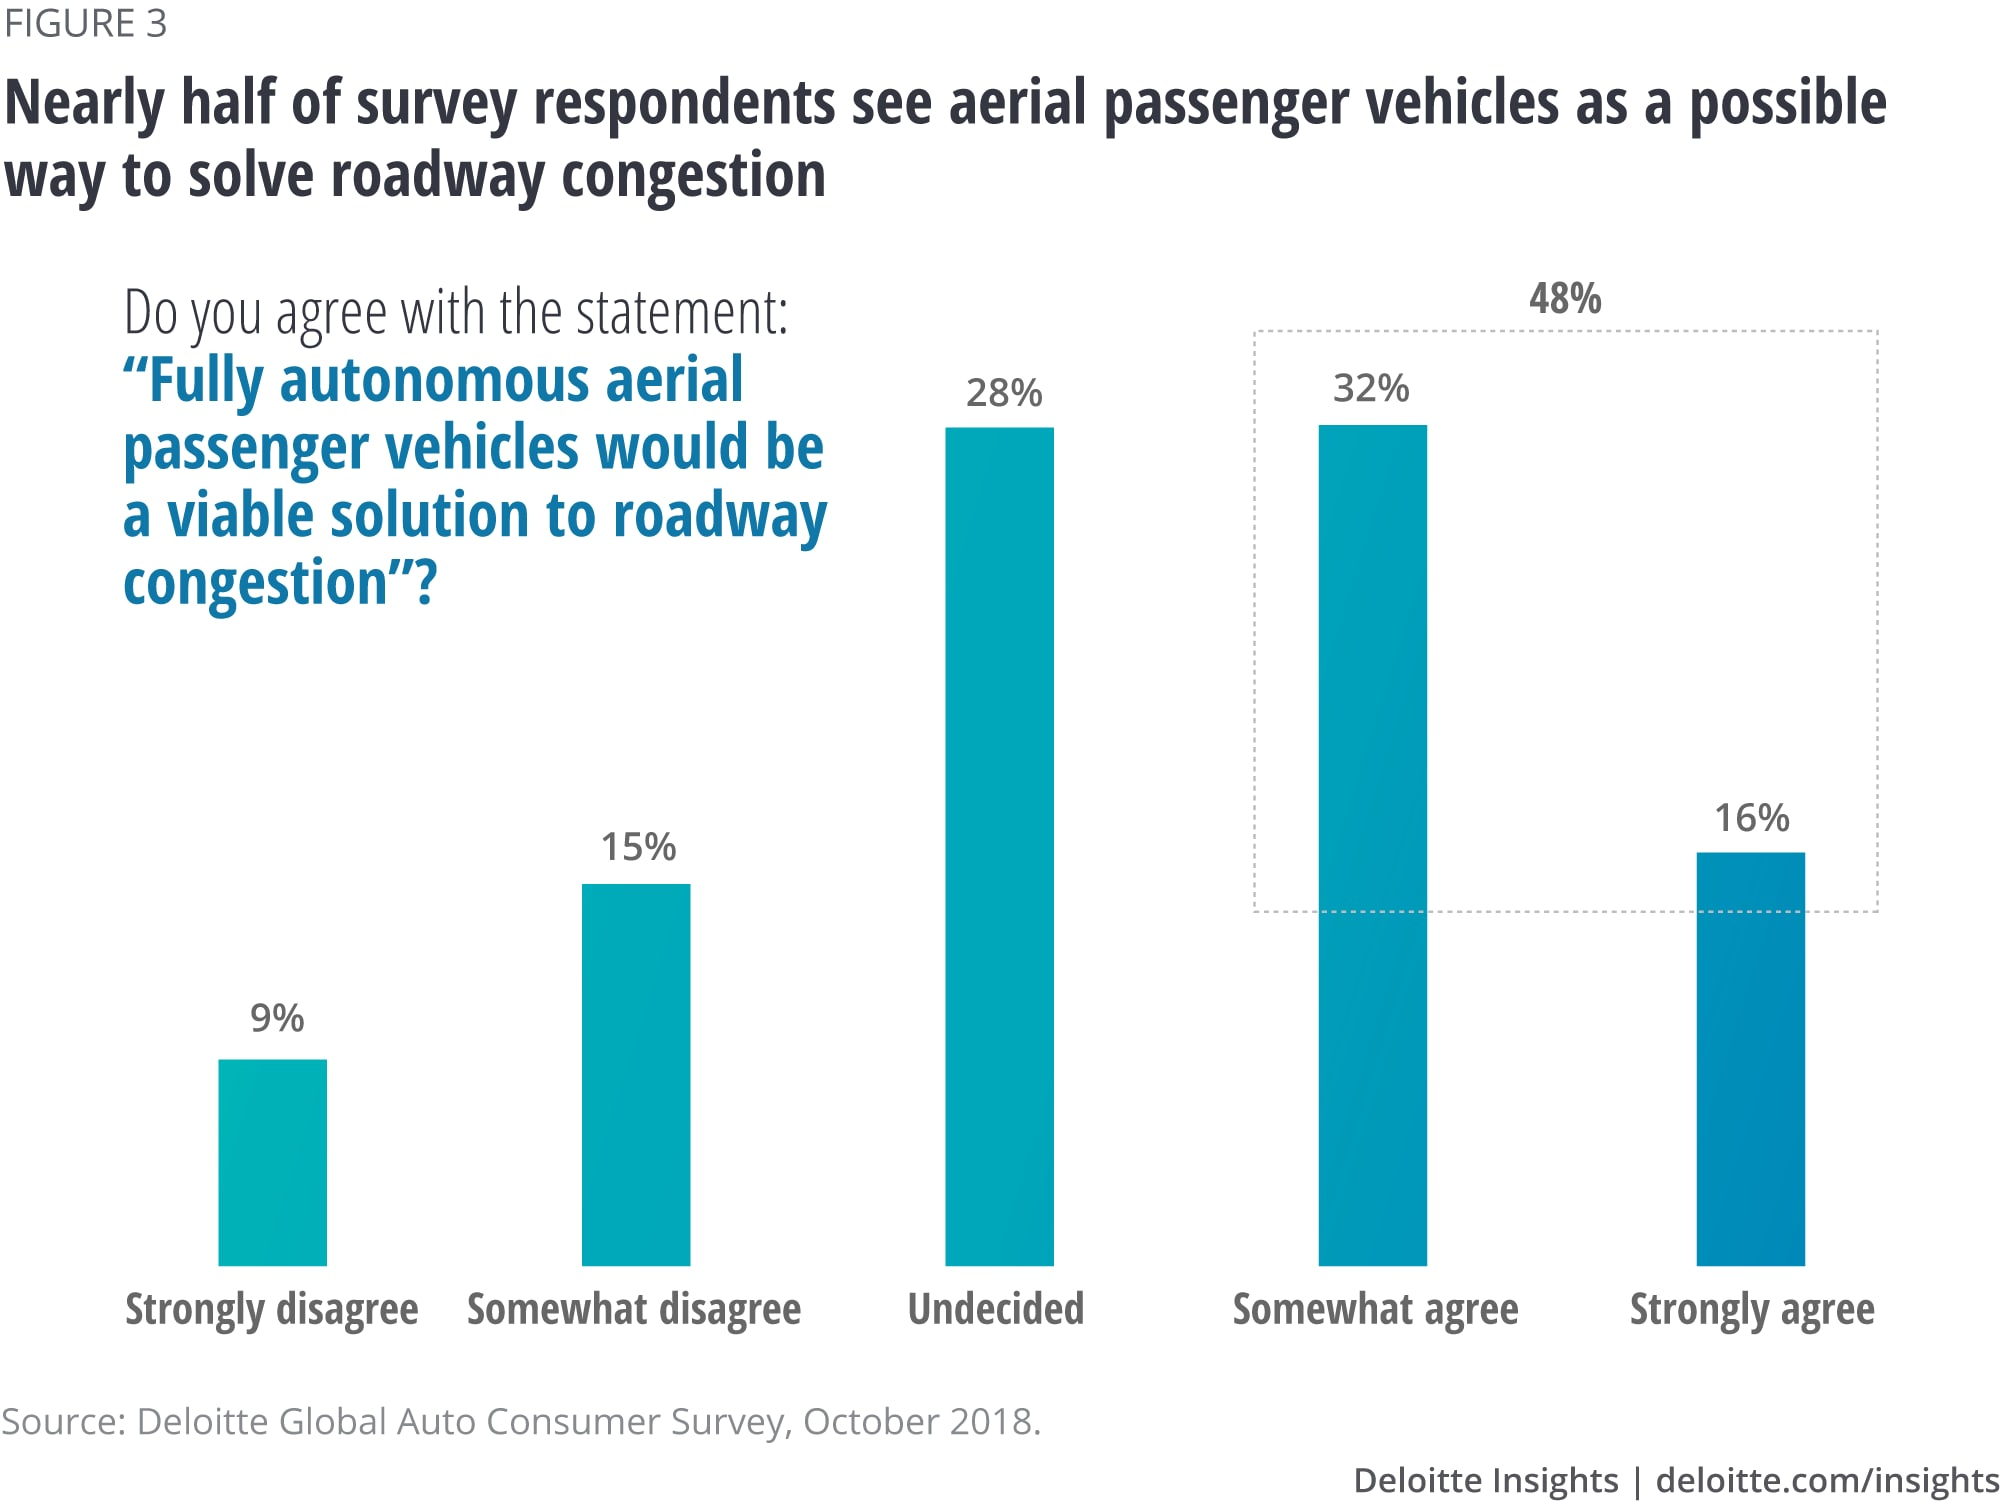 Nearly half of survey respondents see aerial passenger vehicles as a possible way to solve roadway congestion